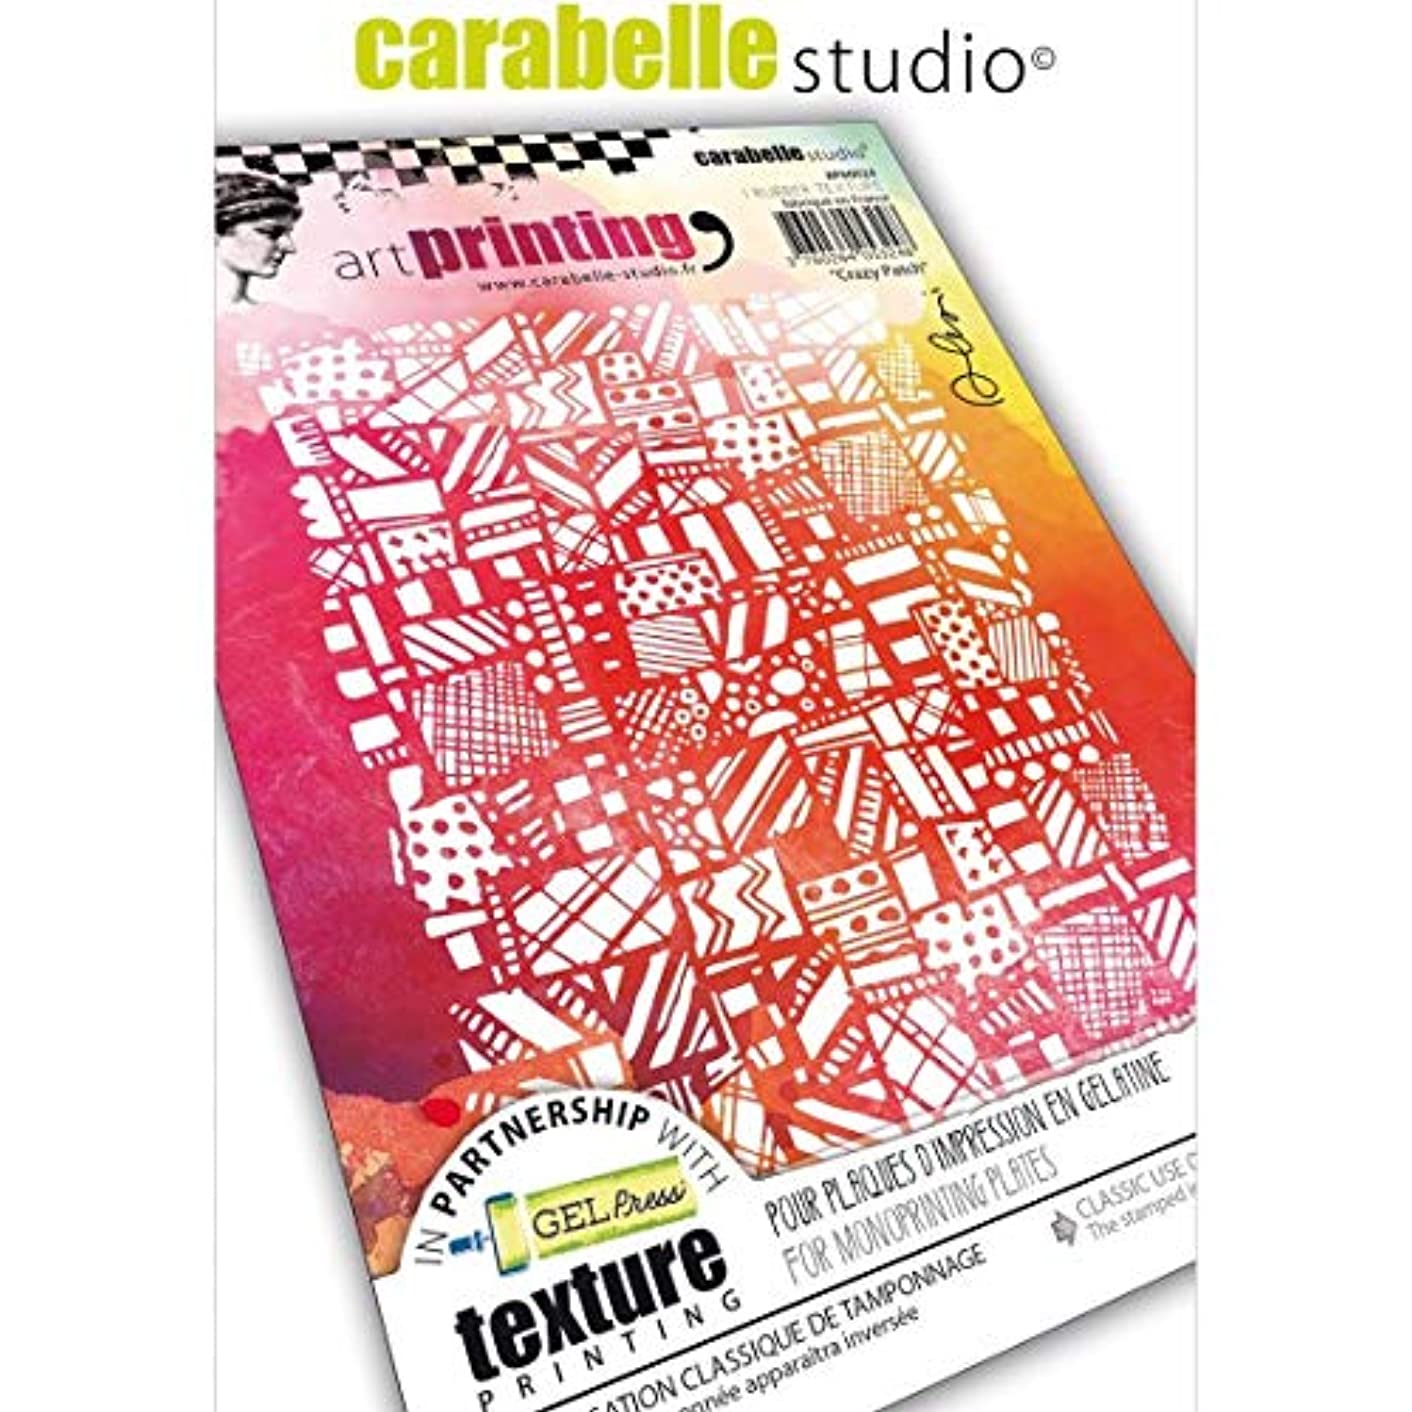 Carabelle Studios Art Printing Rubber Texture Stamp Rectangle, Crazy Patch, for Gel Monoprint Plates, A6